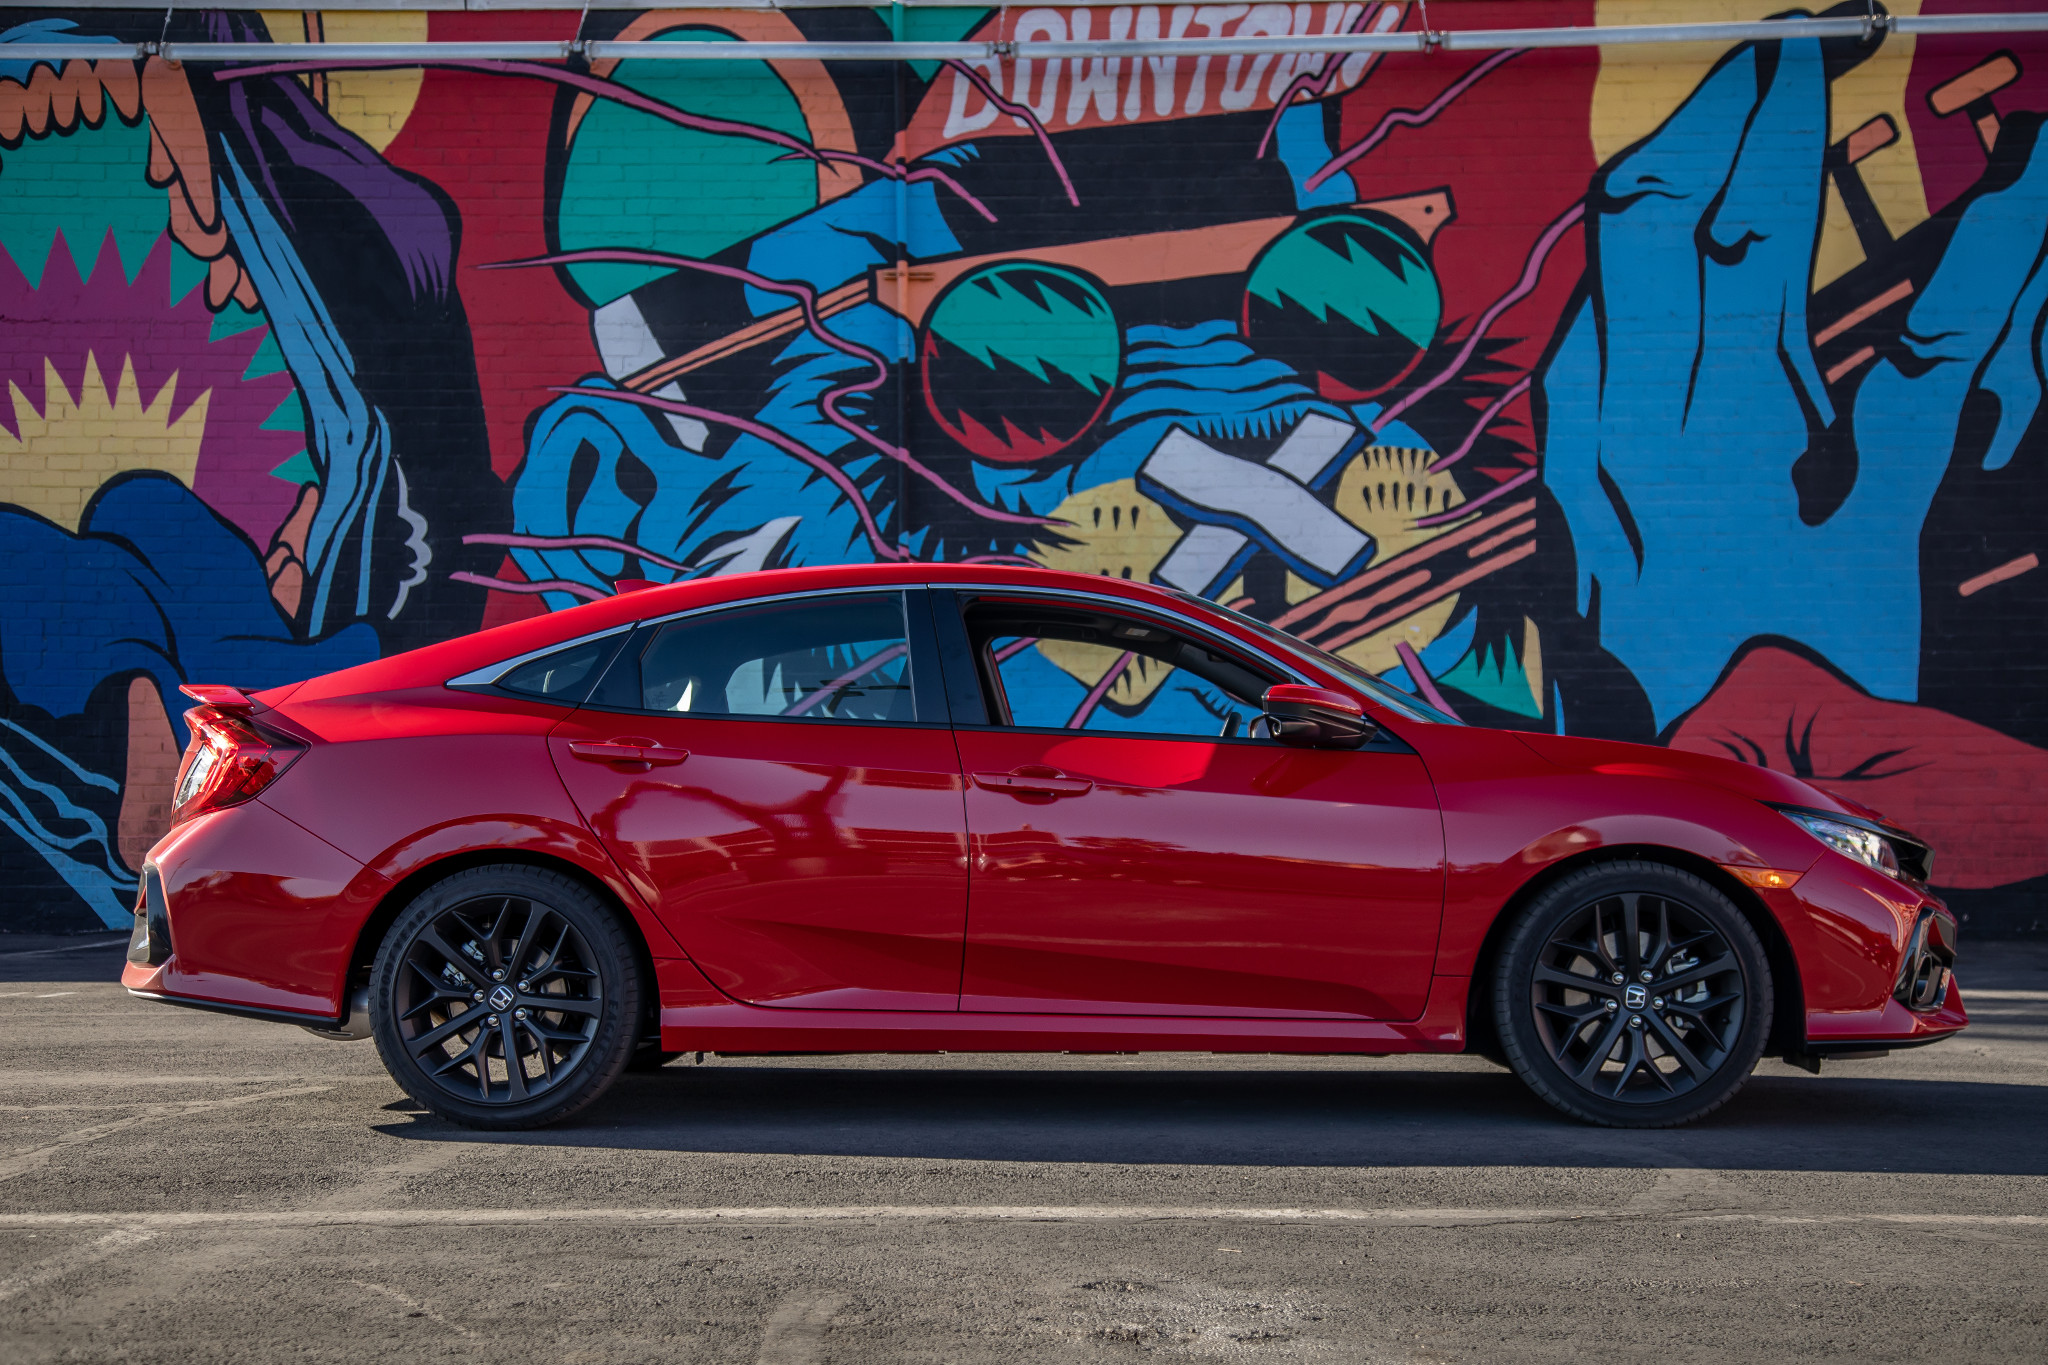 honda-civic-si-2020-11-exterior--profile--red--textures-and-patterns.jpg